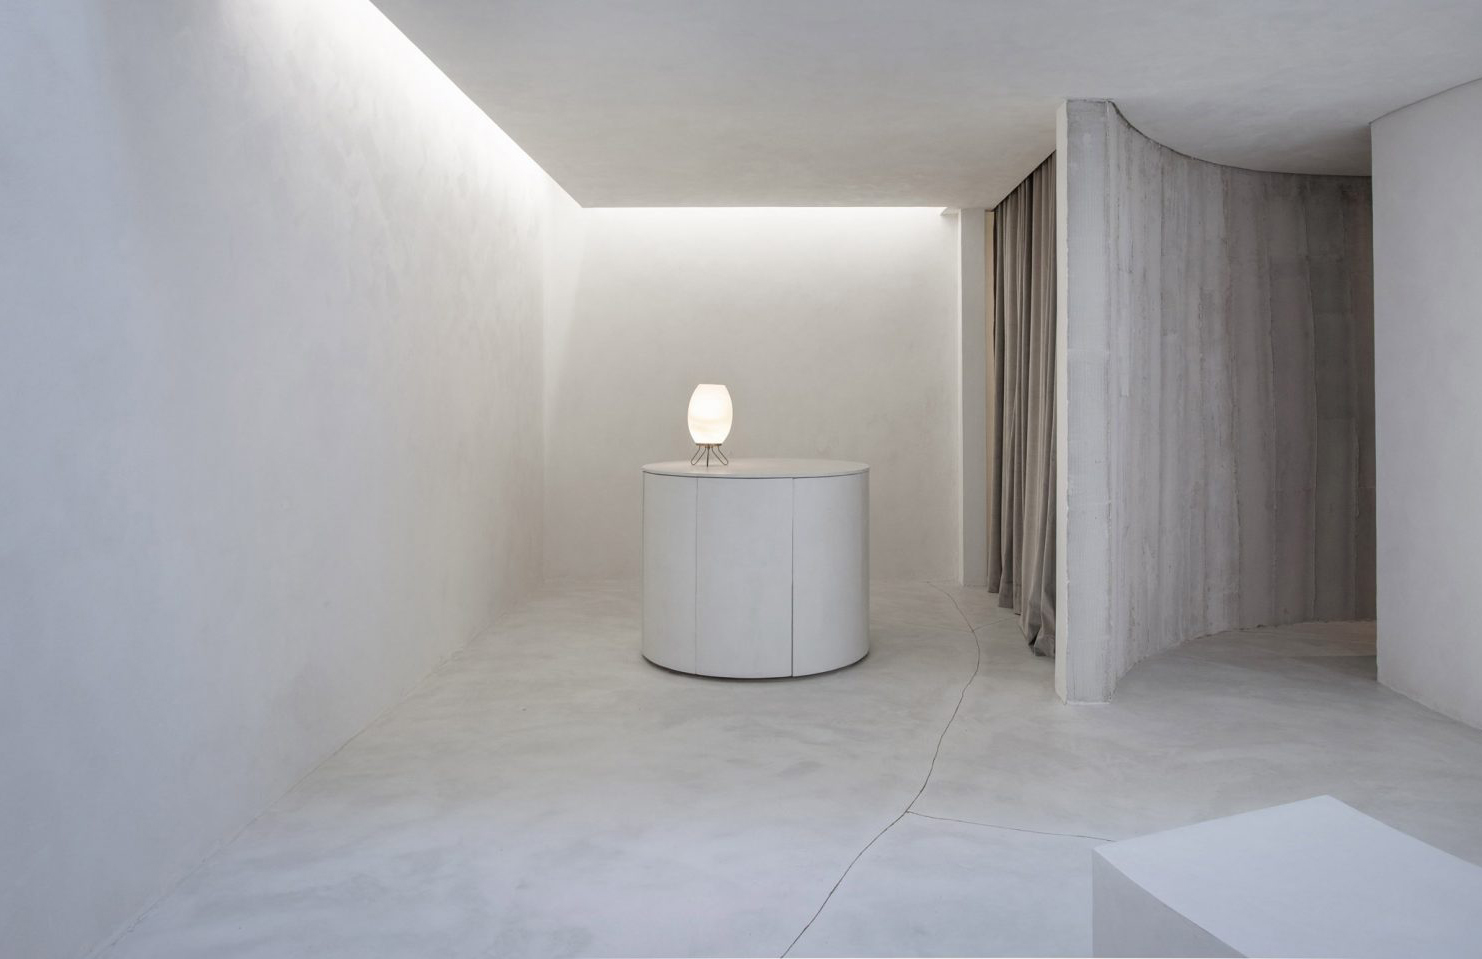 Selo Store in Sao Paulo takes minimalism to the max